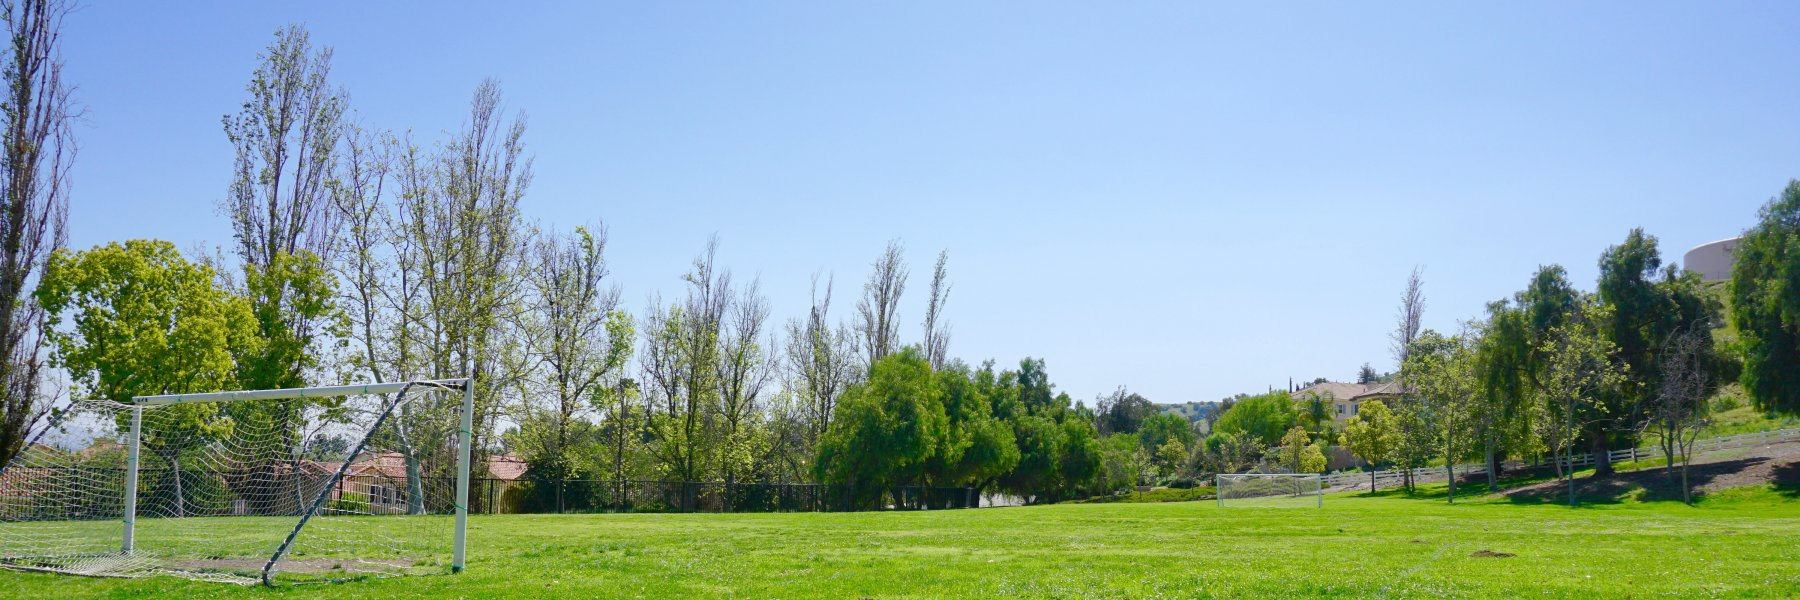 Butterfield Ranch is a community of homes in Chino Hills California